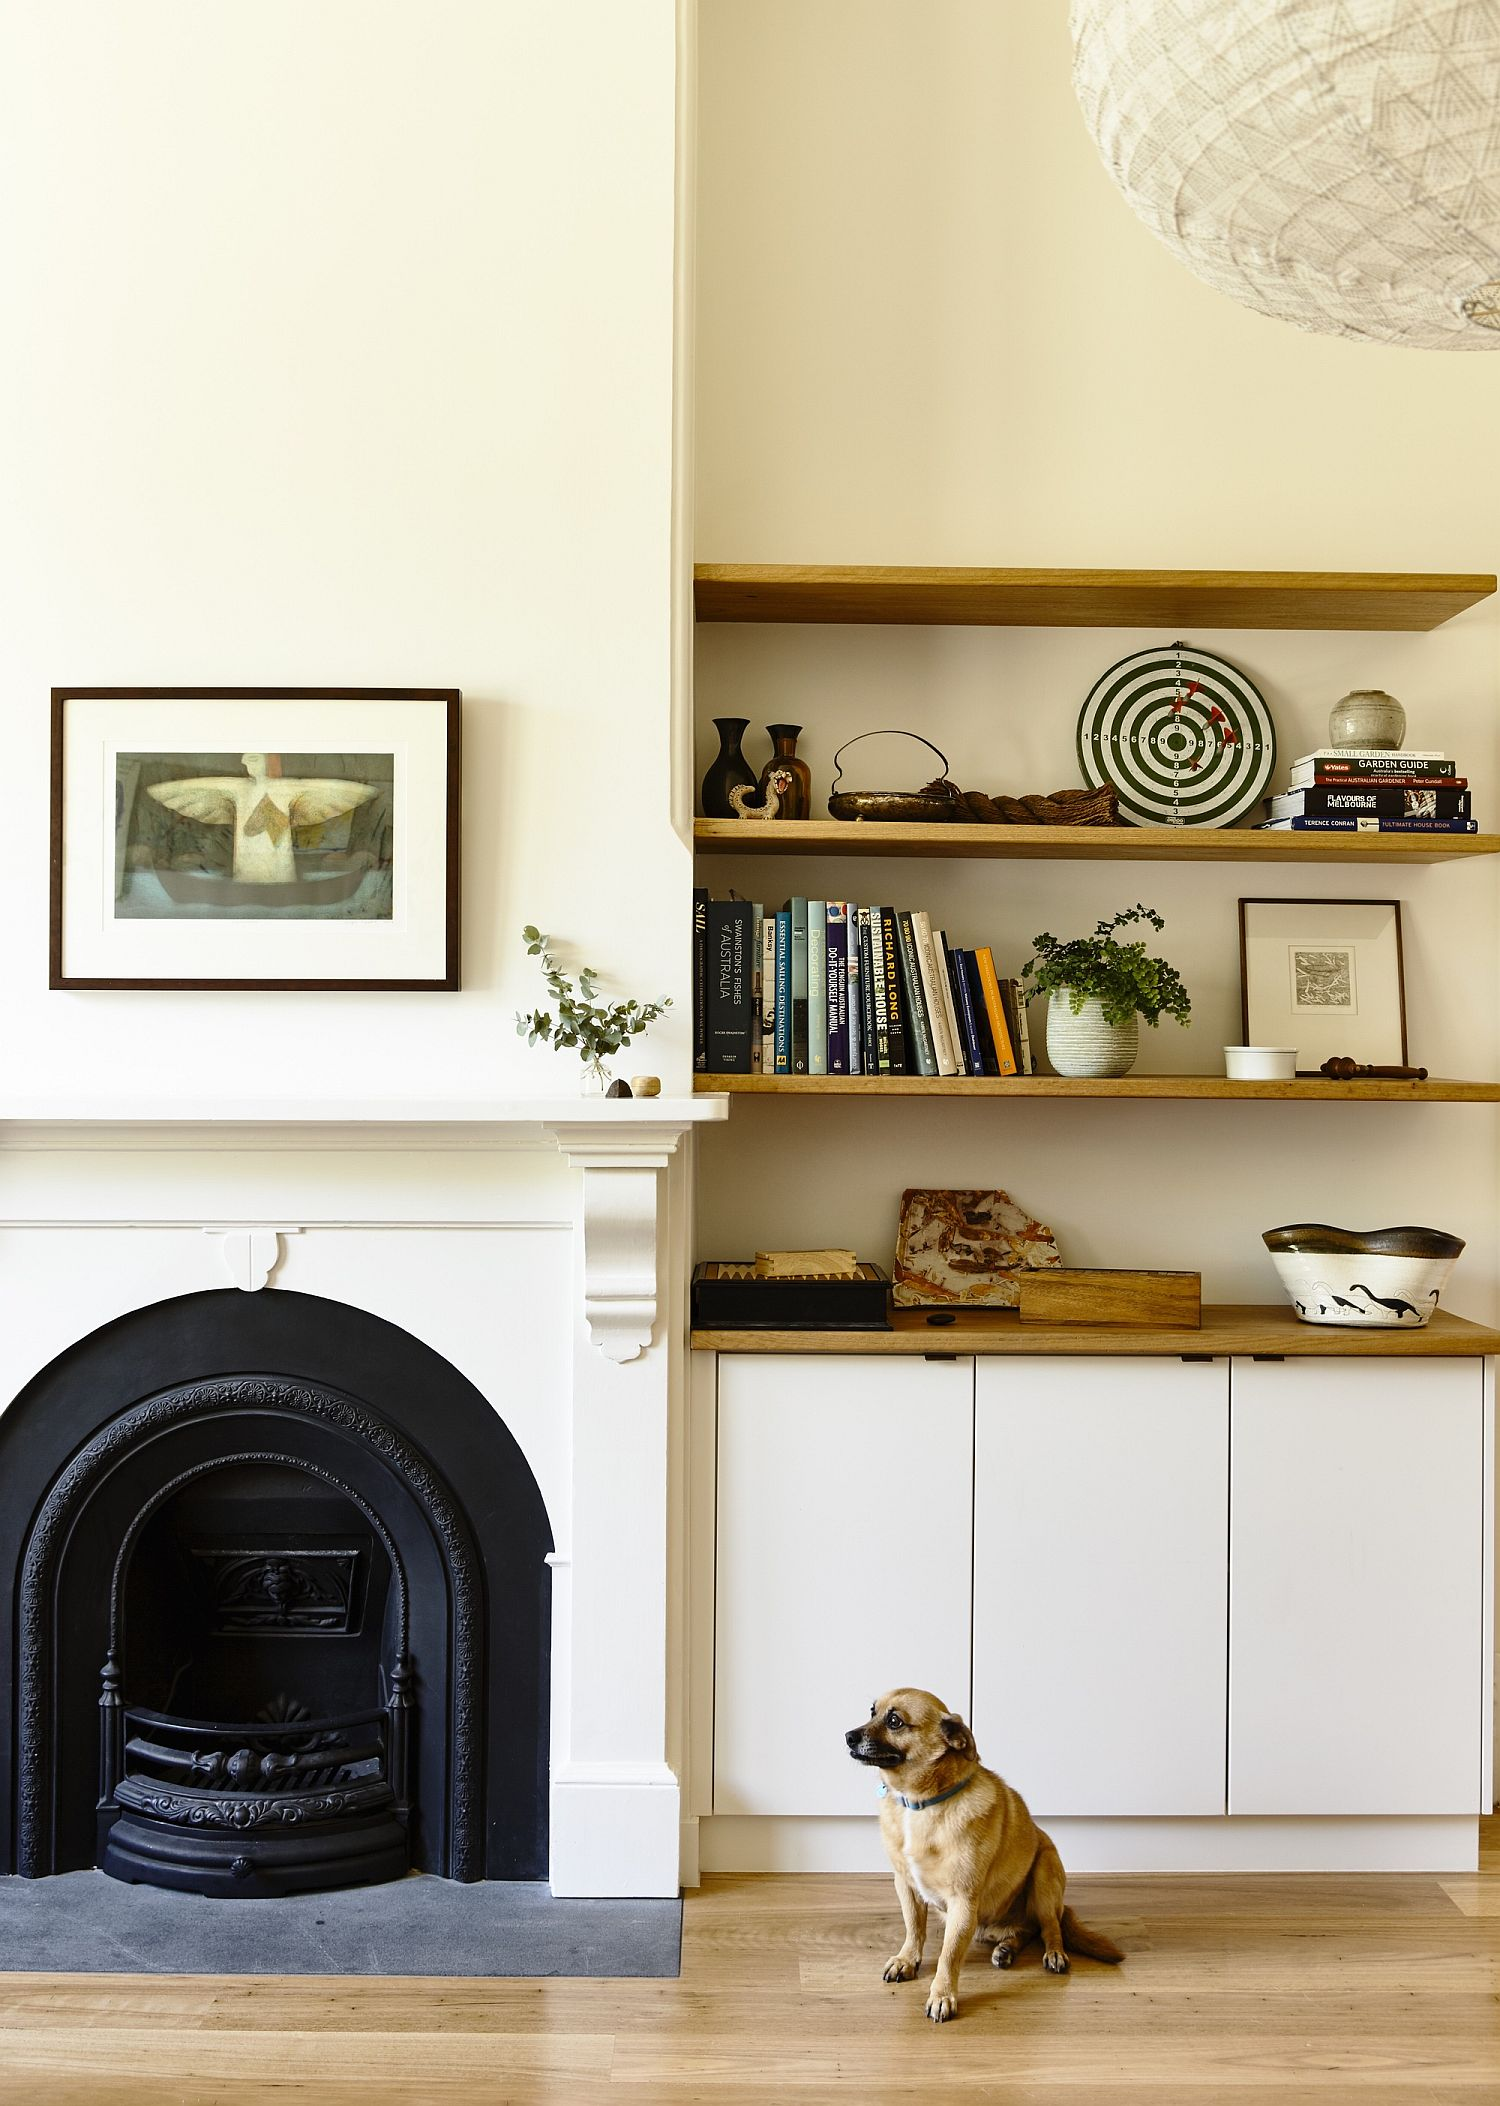 Striking features of the original home kept intact like the fireplace